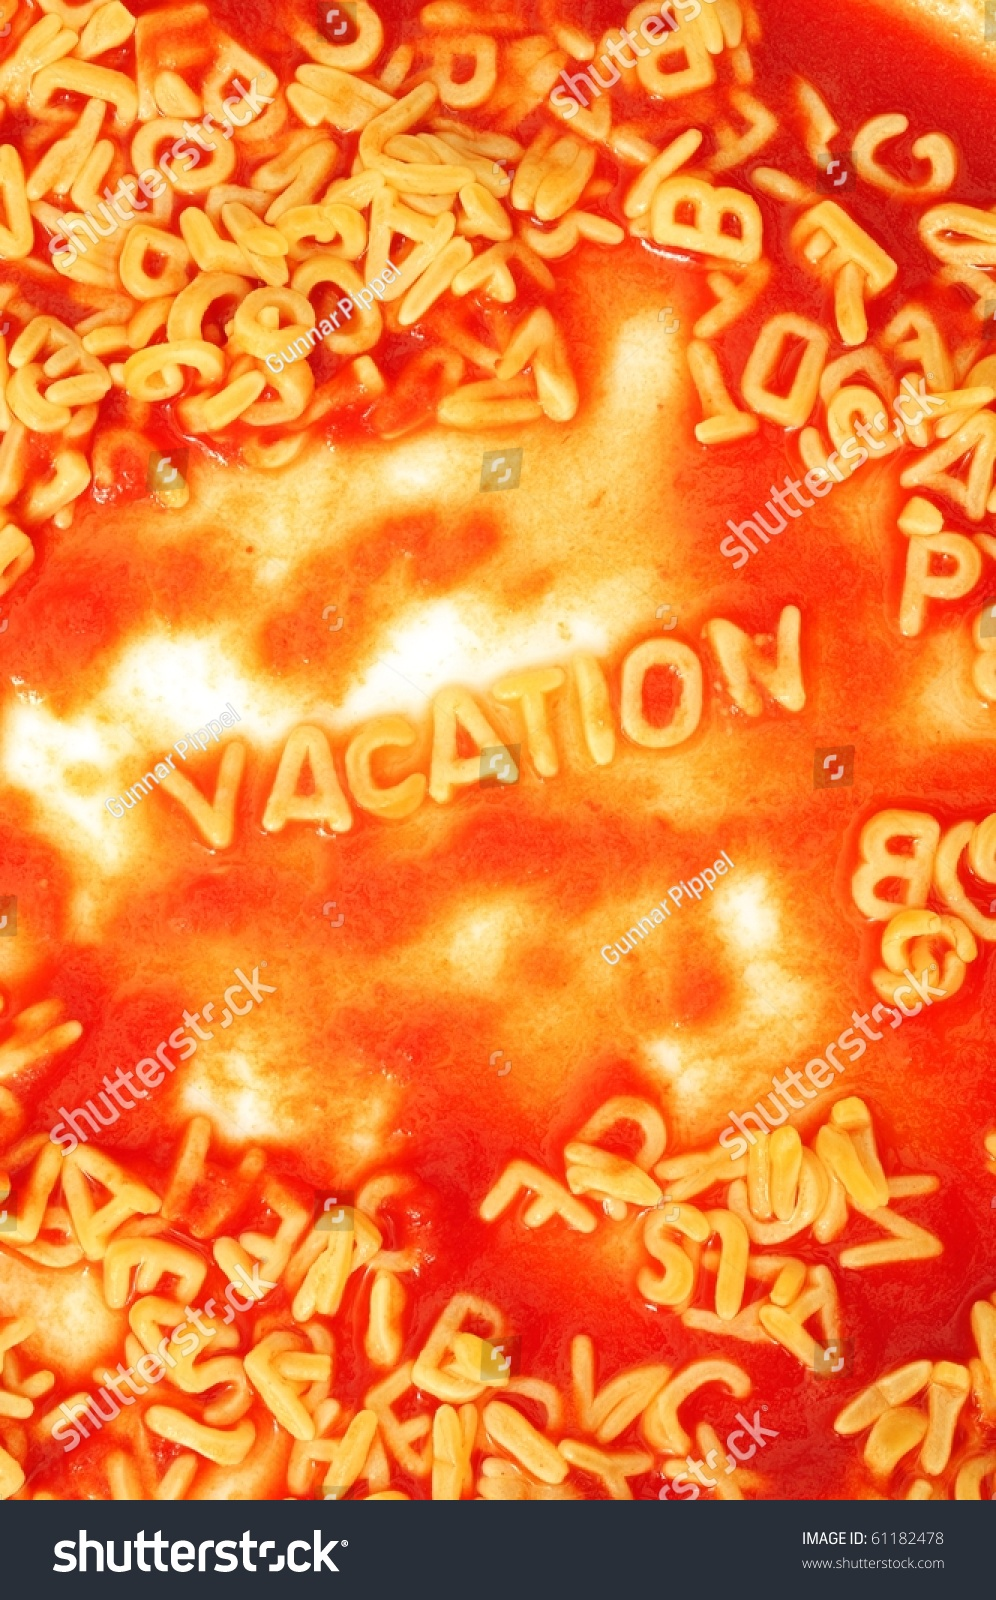 Vacation Holiday Concept Red Pasta Snack Stock Photo 61182478 ...